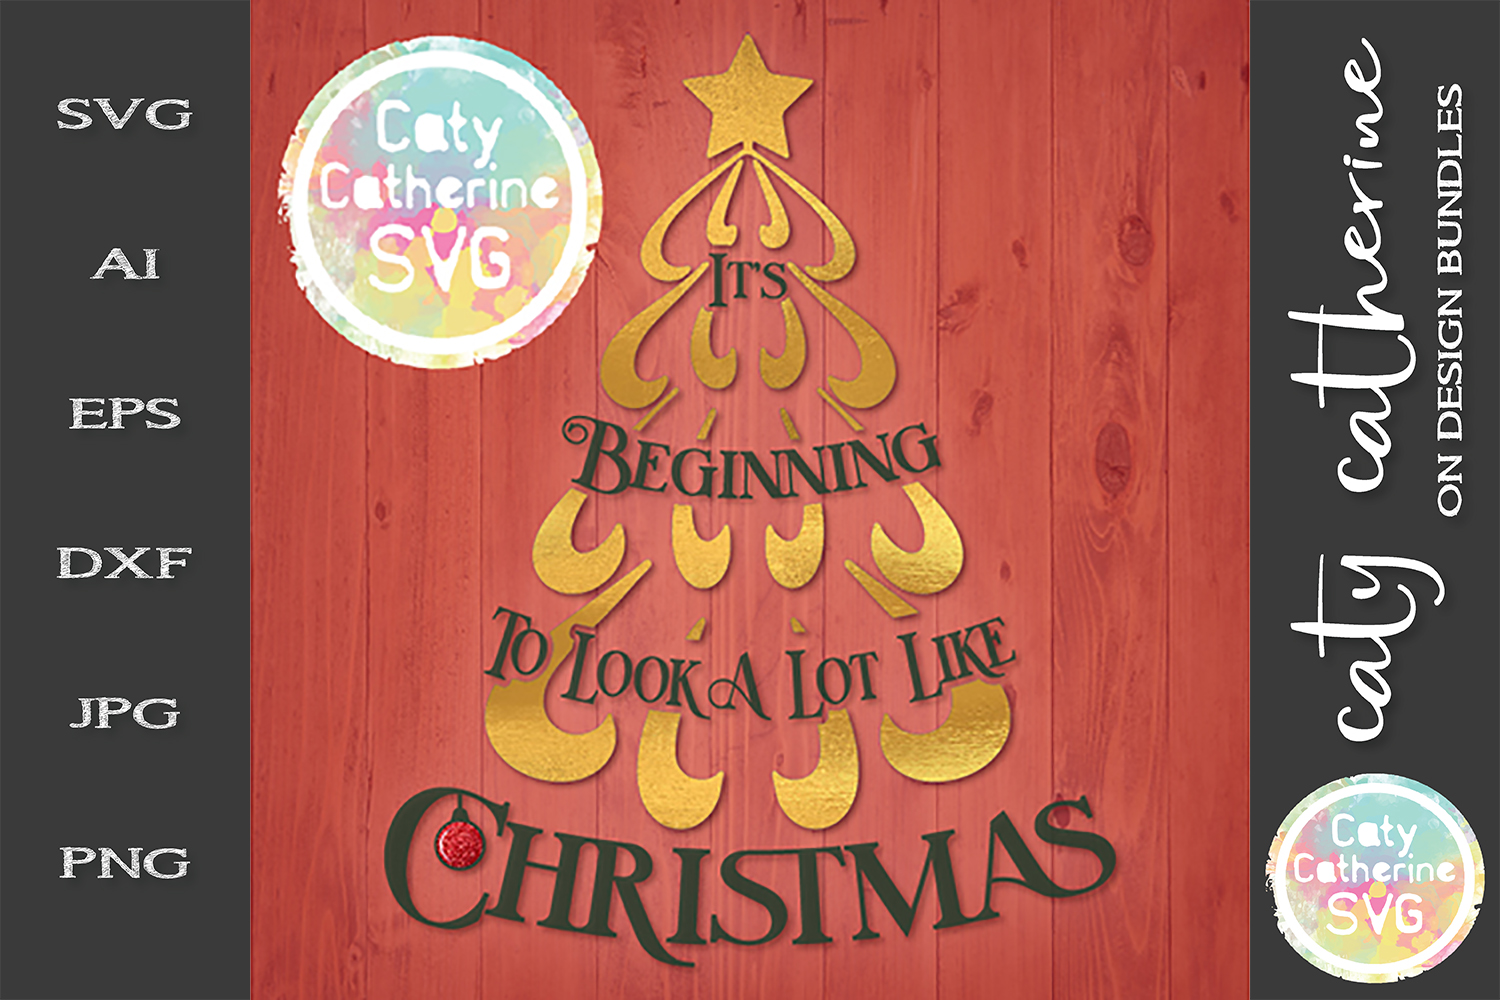 It's Beginning To Look A Lot Like Christmas SVG Cut File example image 1